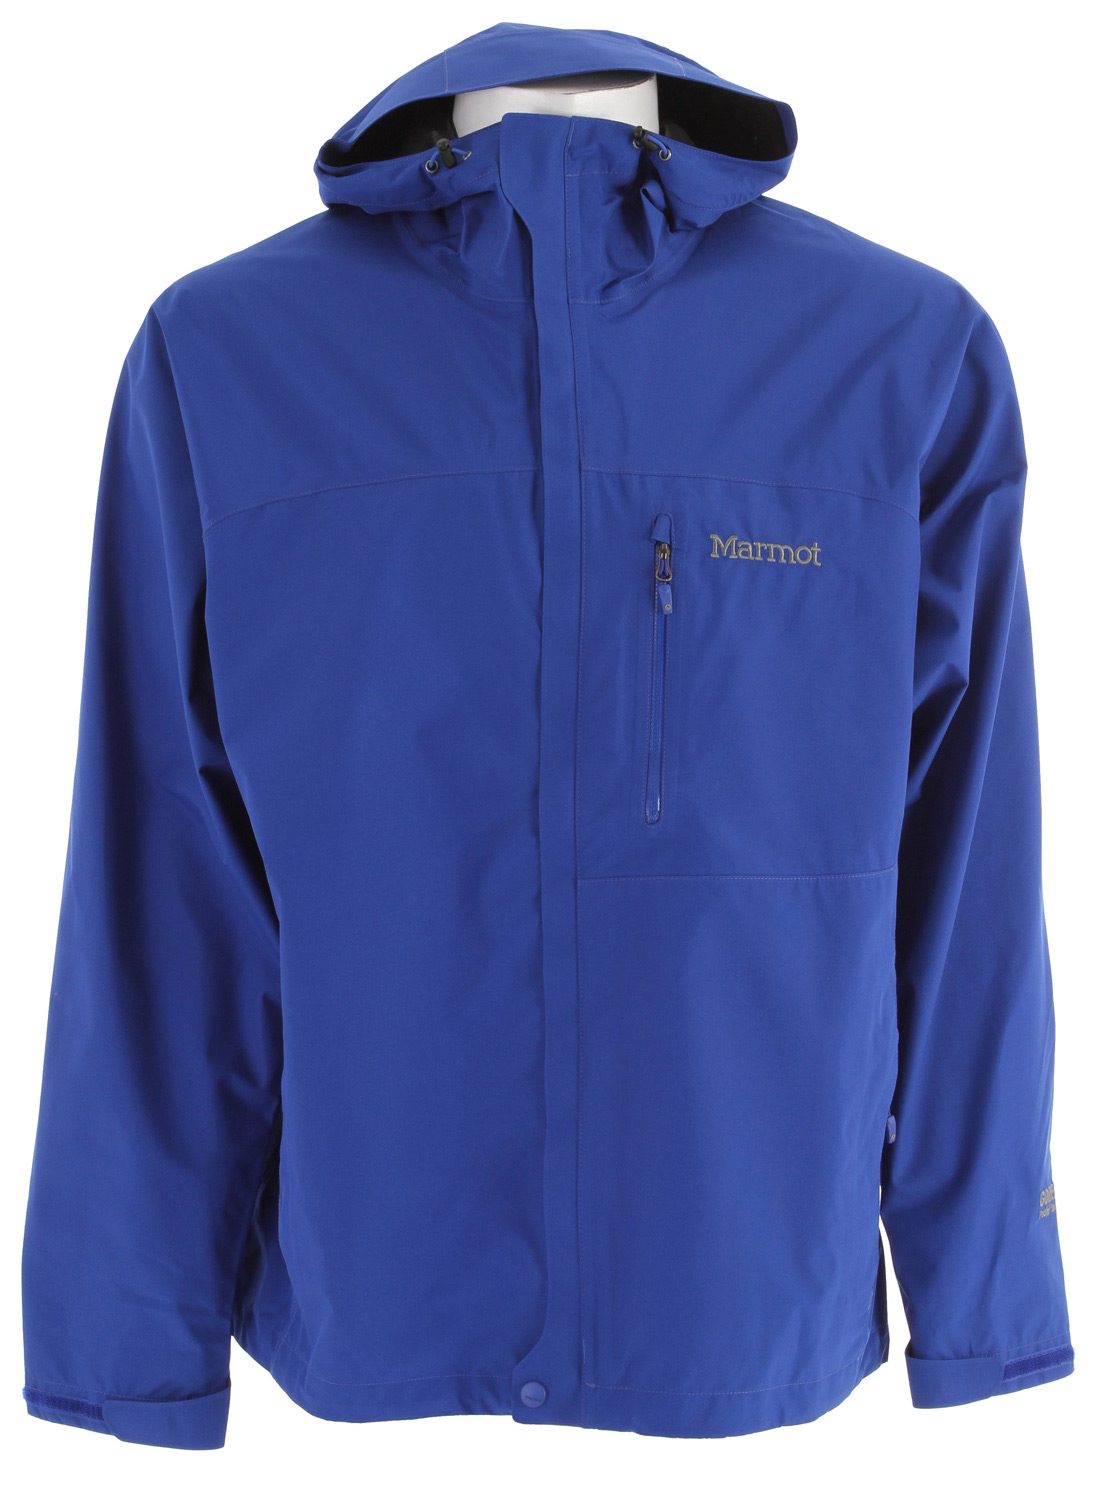 "Surf Key Features of the Marmot Minimalist Jacket: GORE-TEX Paclite: Guaranteed to Keep You Dry Weight 0lb 15.8oz (448g) Materials GORE-TEXPaclite100% Polyester 3.6 oz/yd PitZips 100% Seam Taped Attached Adjustable Hood Chest Pocket with Water-Resistant Zipper Zippered Hand Pockets Storm Flap over Zipper with Snap/Velcro Closure Elastic Draw Cord Hem DriClime Lined Chin Guard Angel-Wing Movement 29 1/2"" Center Back Length for Size Medium - $139.95"